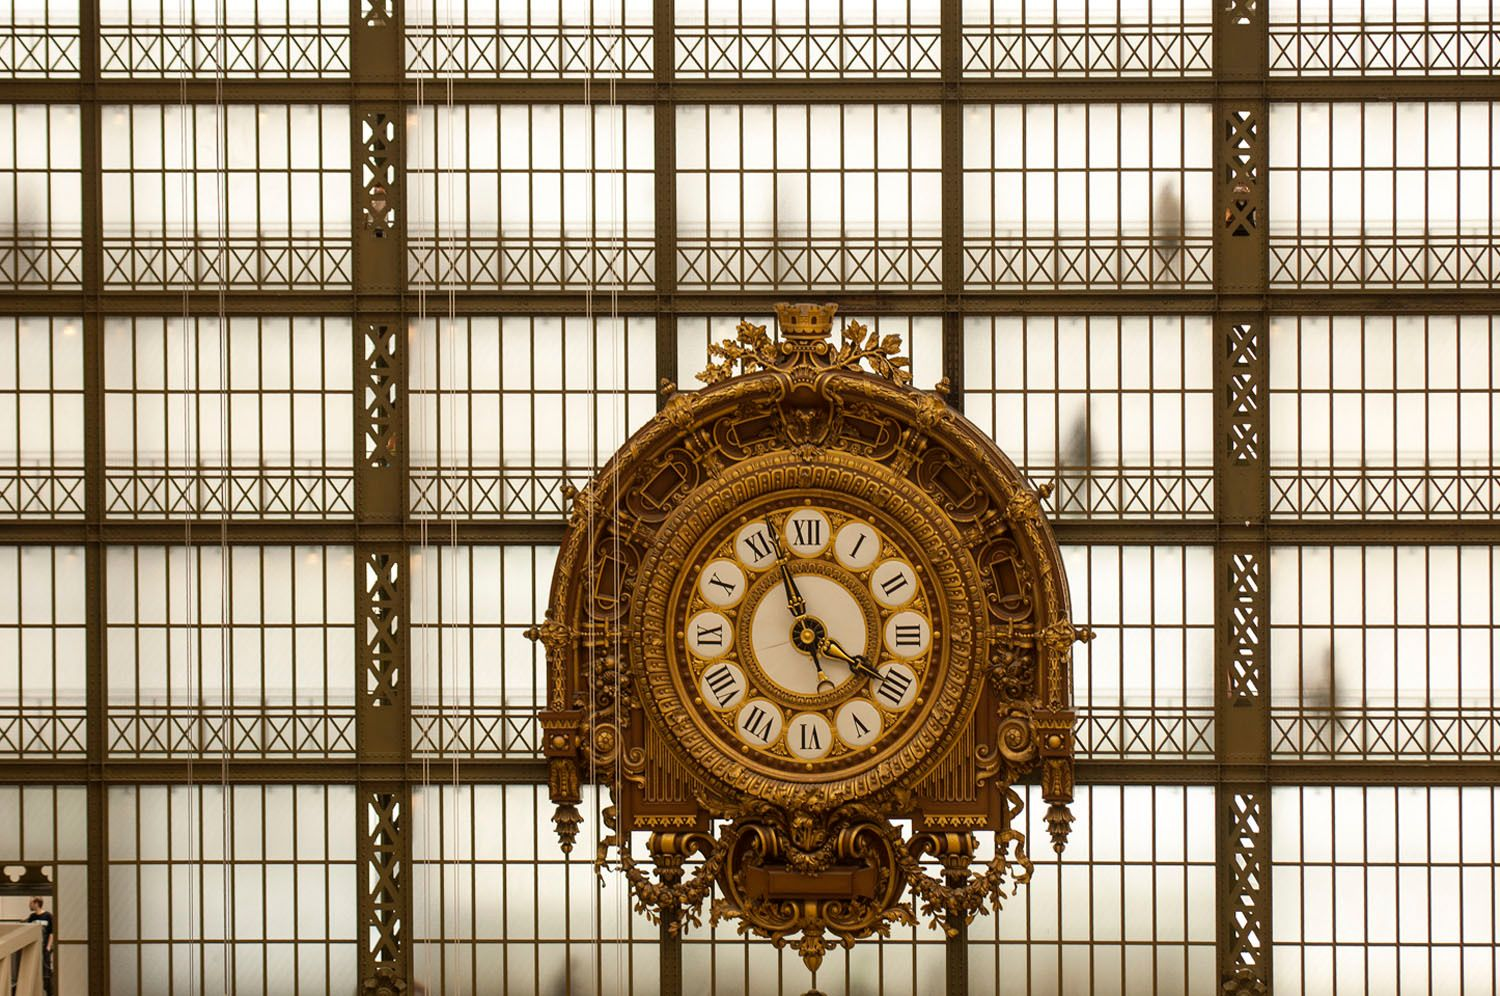 Interior view of  the Musee d'Orsay